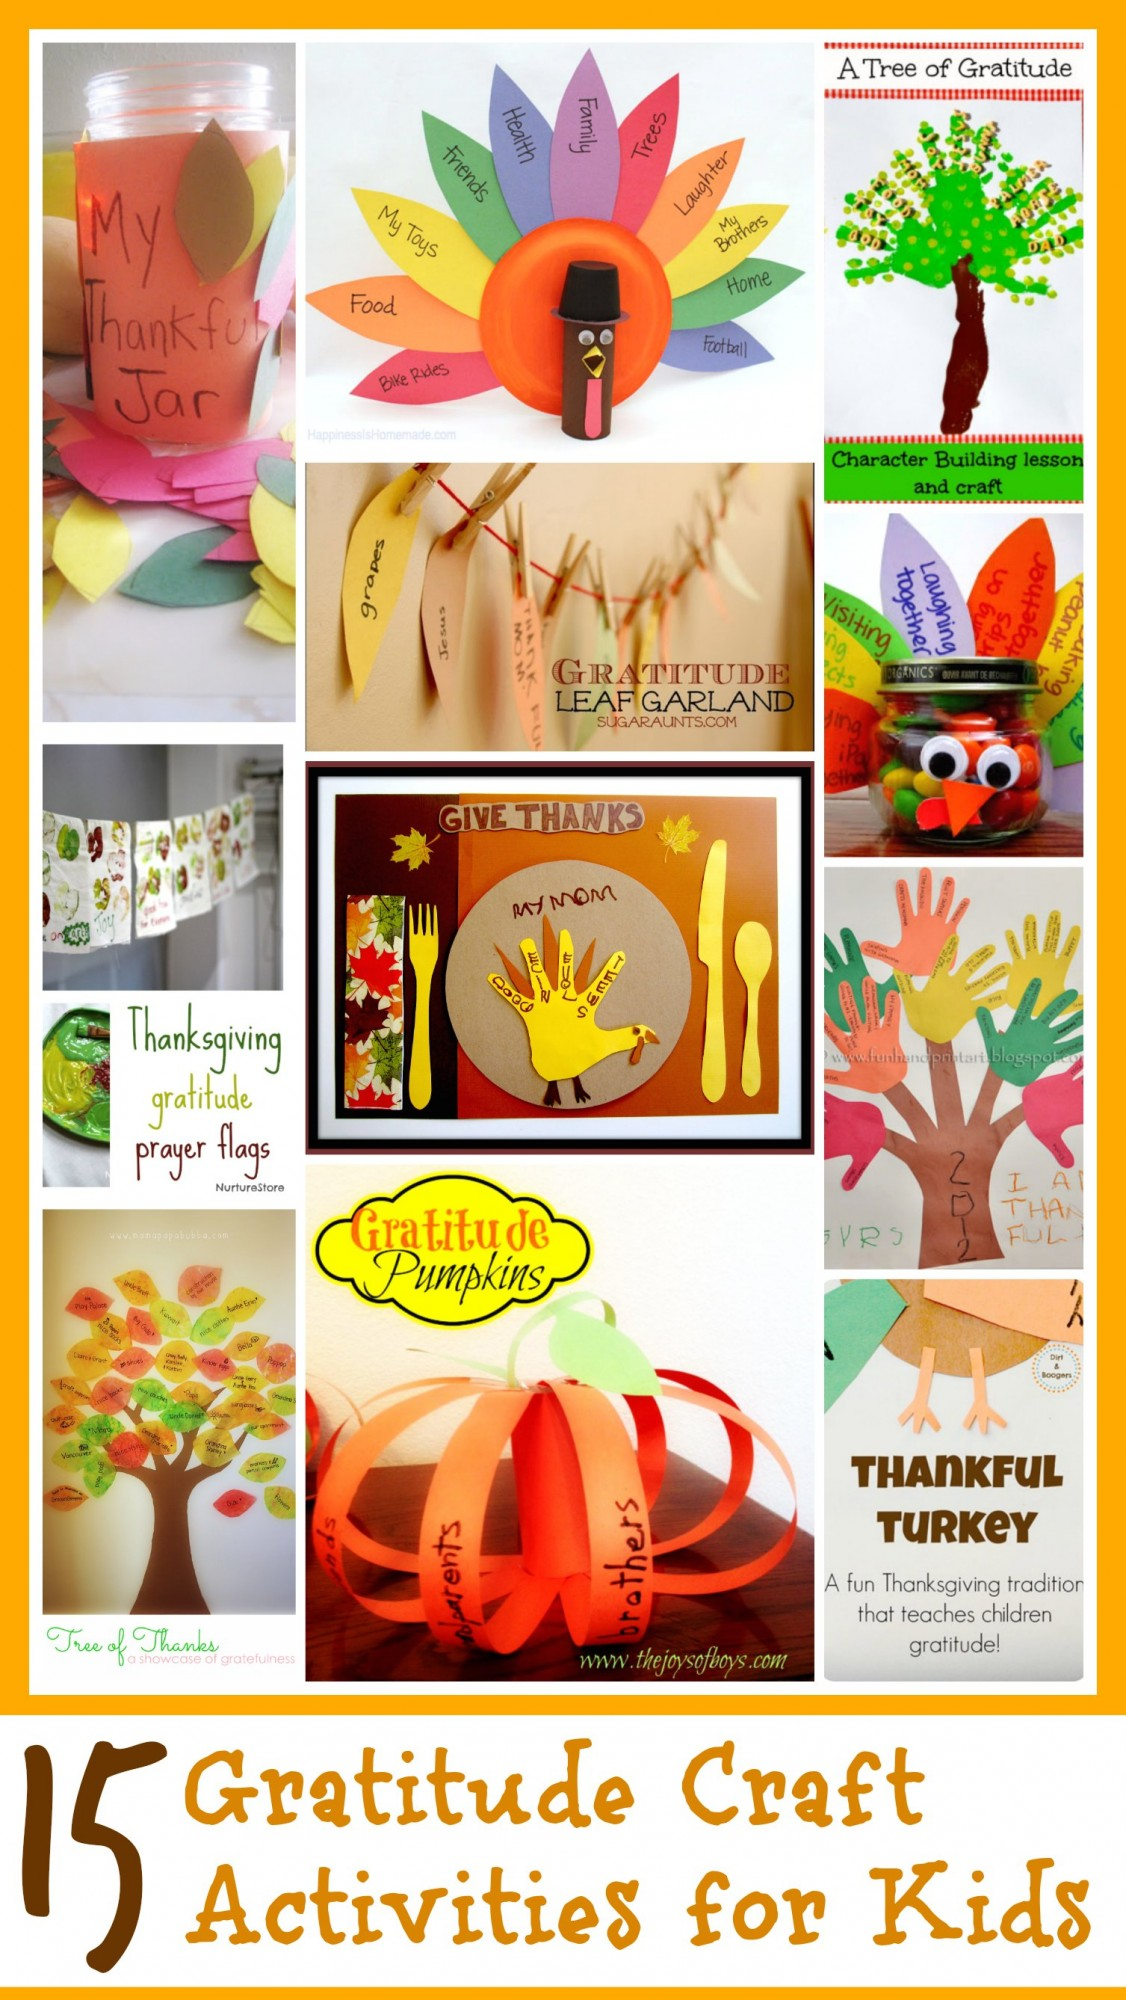 15 Gratitude Craft Activities for Kids - www.mamashappyhive.com